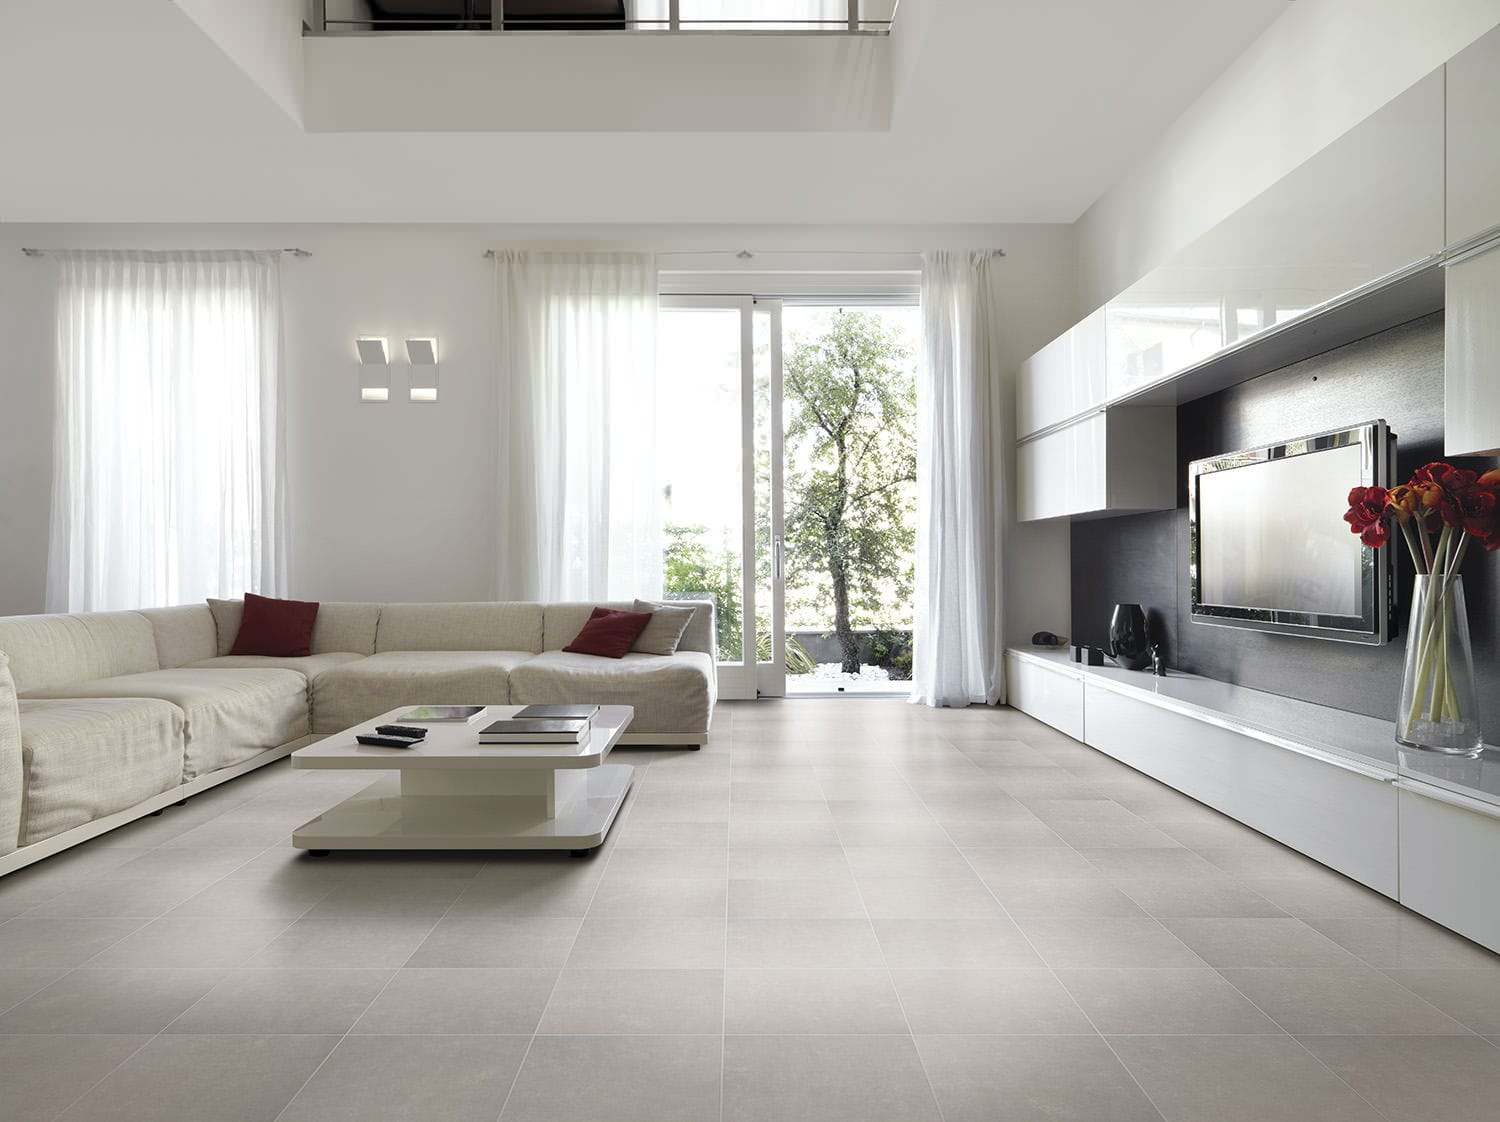 Living room tile floor ceramic satin dubai alfagres sa living room tile floor ceramic satin dubai dailygadgetfo Image collections